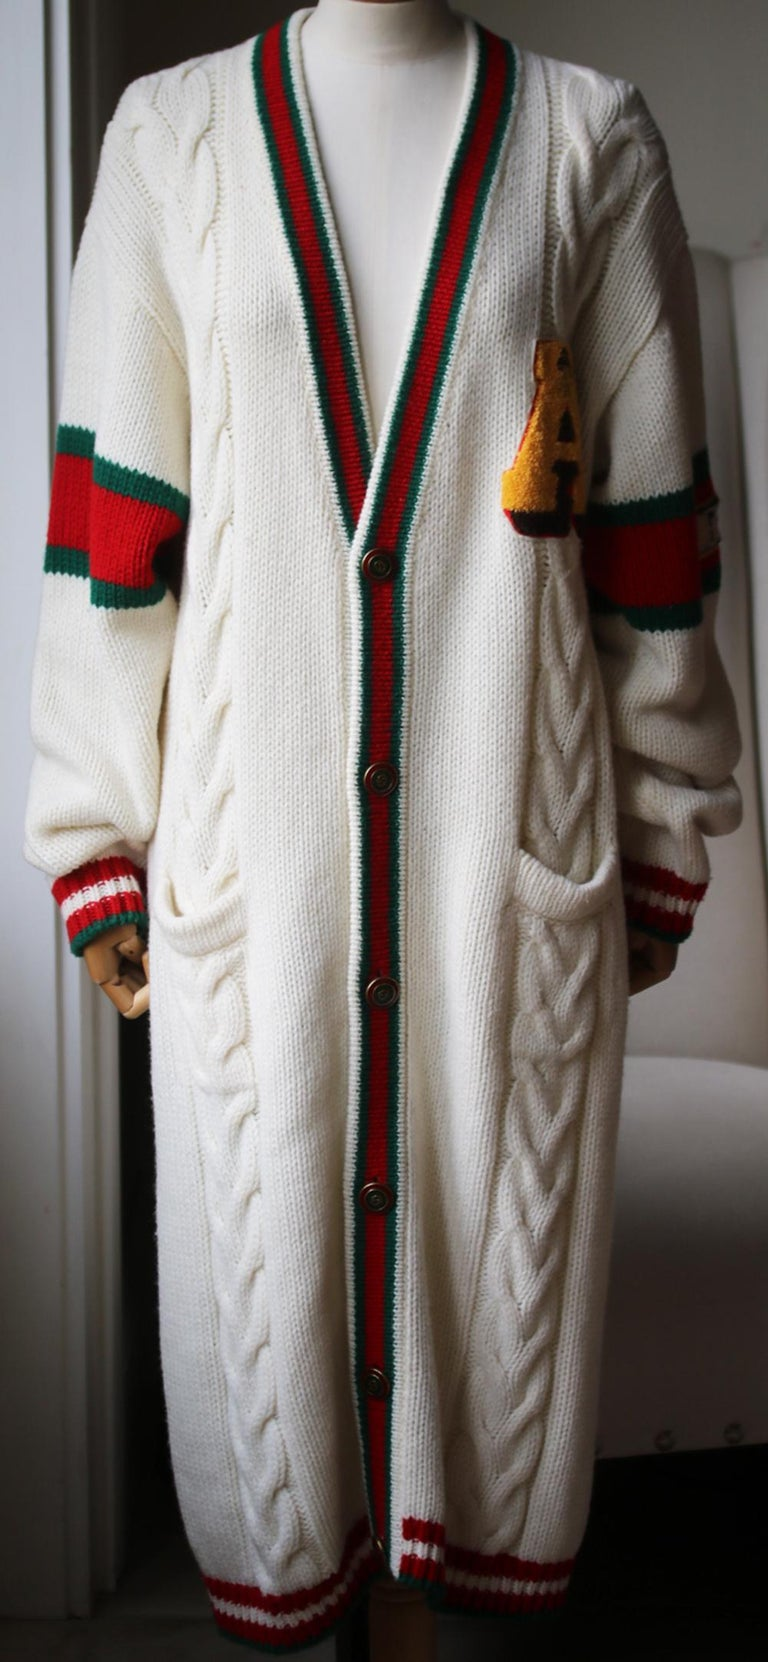 Seen on the runway, this sumptuous cable-knit wool cardigan is detailed with the label's signature green and red webbing and turns to reveal a signature tiger appliqué and the label's tongue-in-cheek 'Guccy' lettering. Cream, green and red wool.